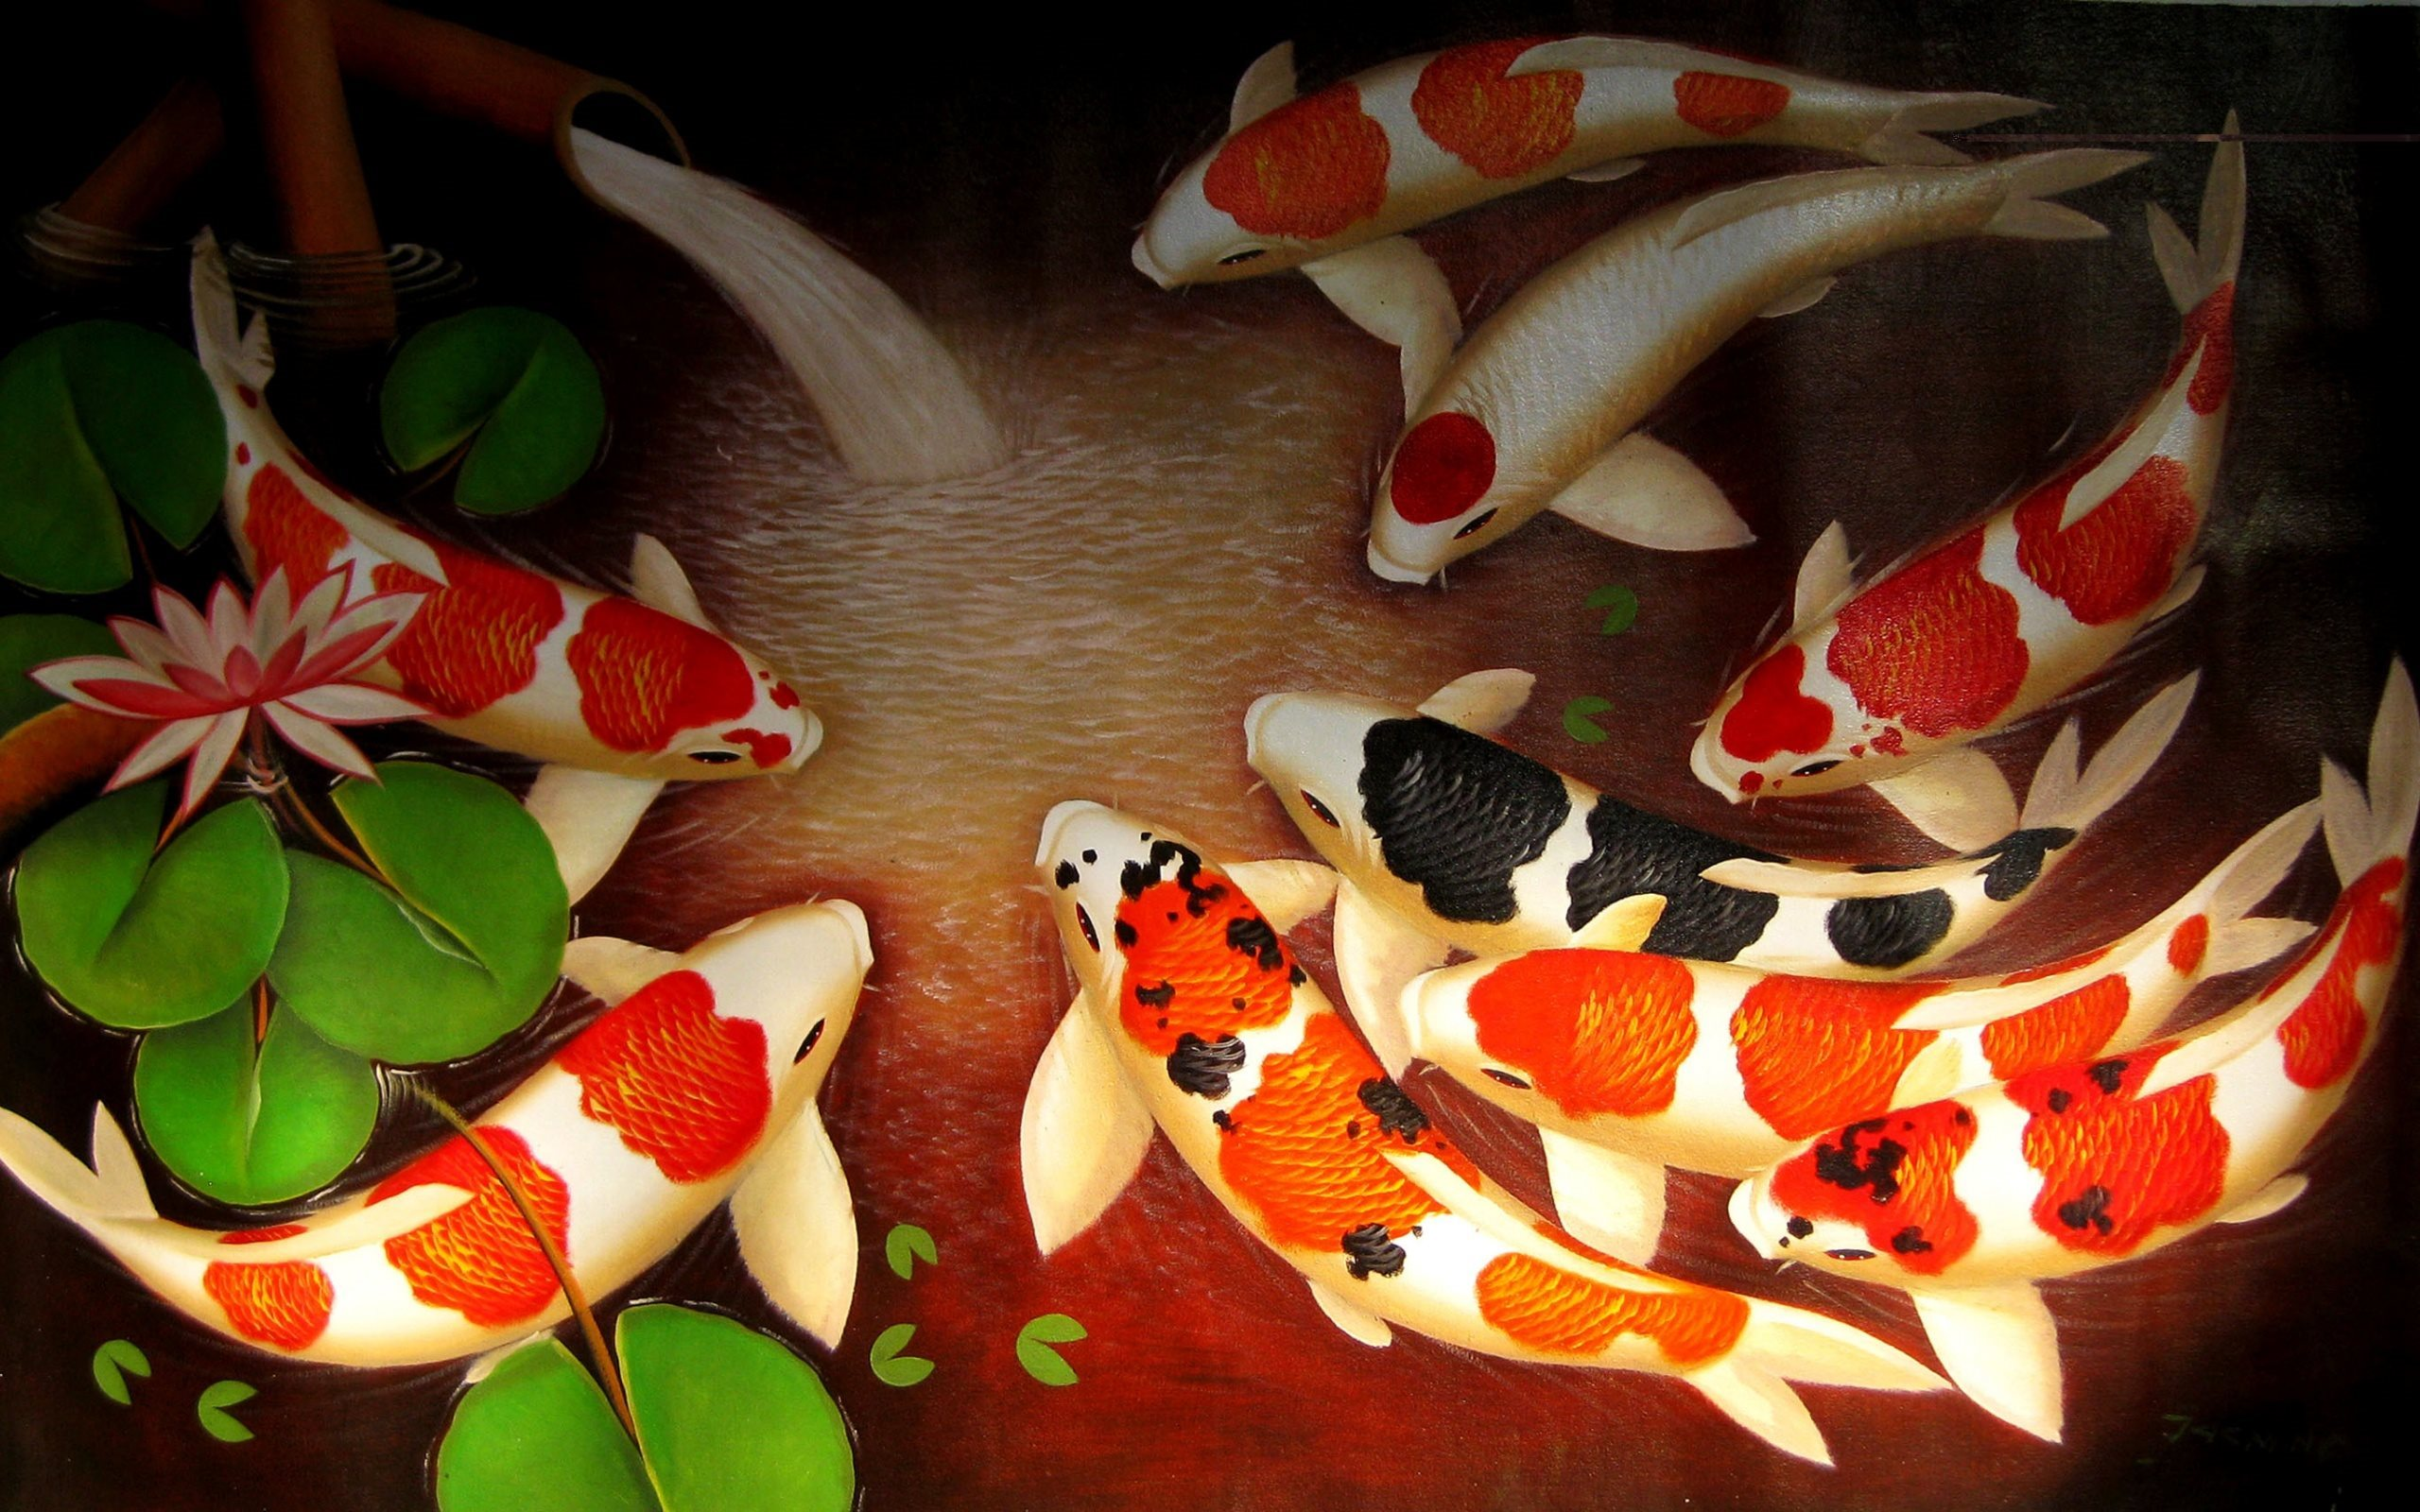 Brocade Carp Koi Fish Colored Carp Japan Koi Koi Fish High Resolution 2560x1600 Wallpaper Teahub Io